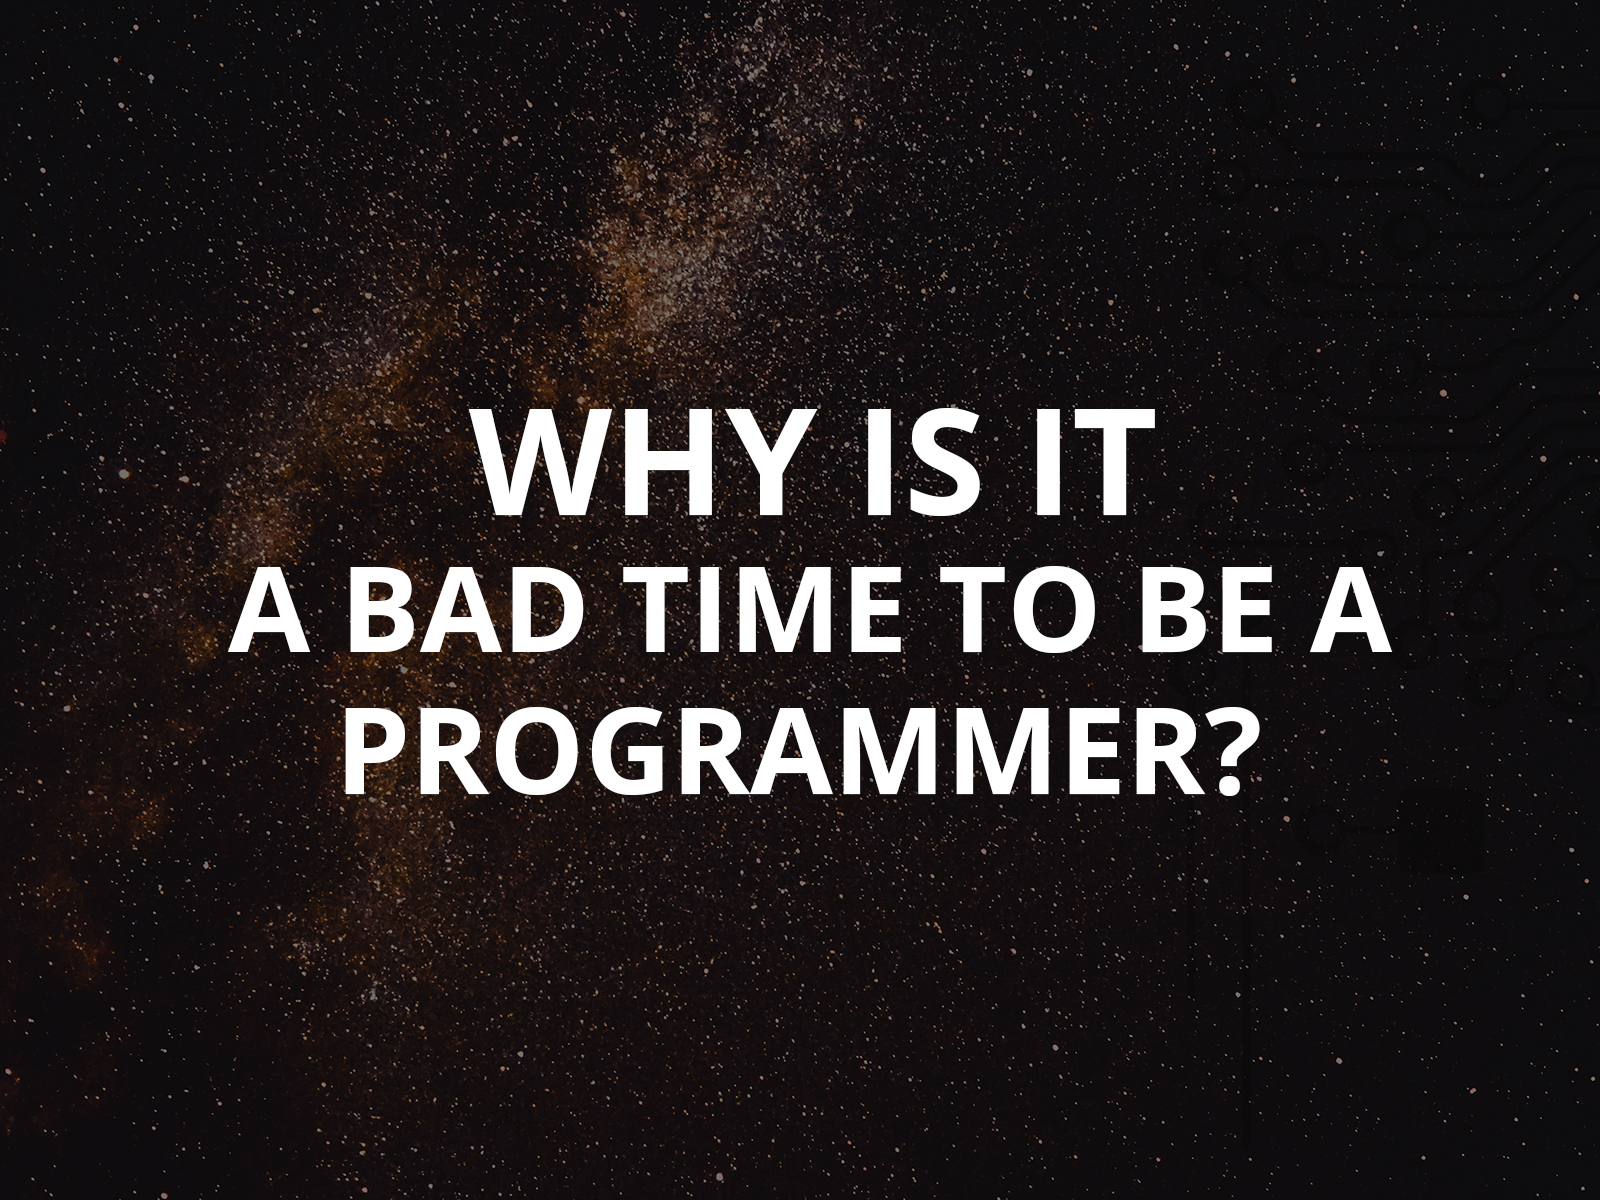 Why Is It a Bad Time to be a Programmer?